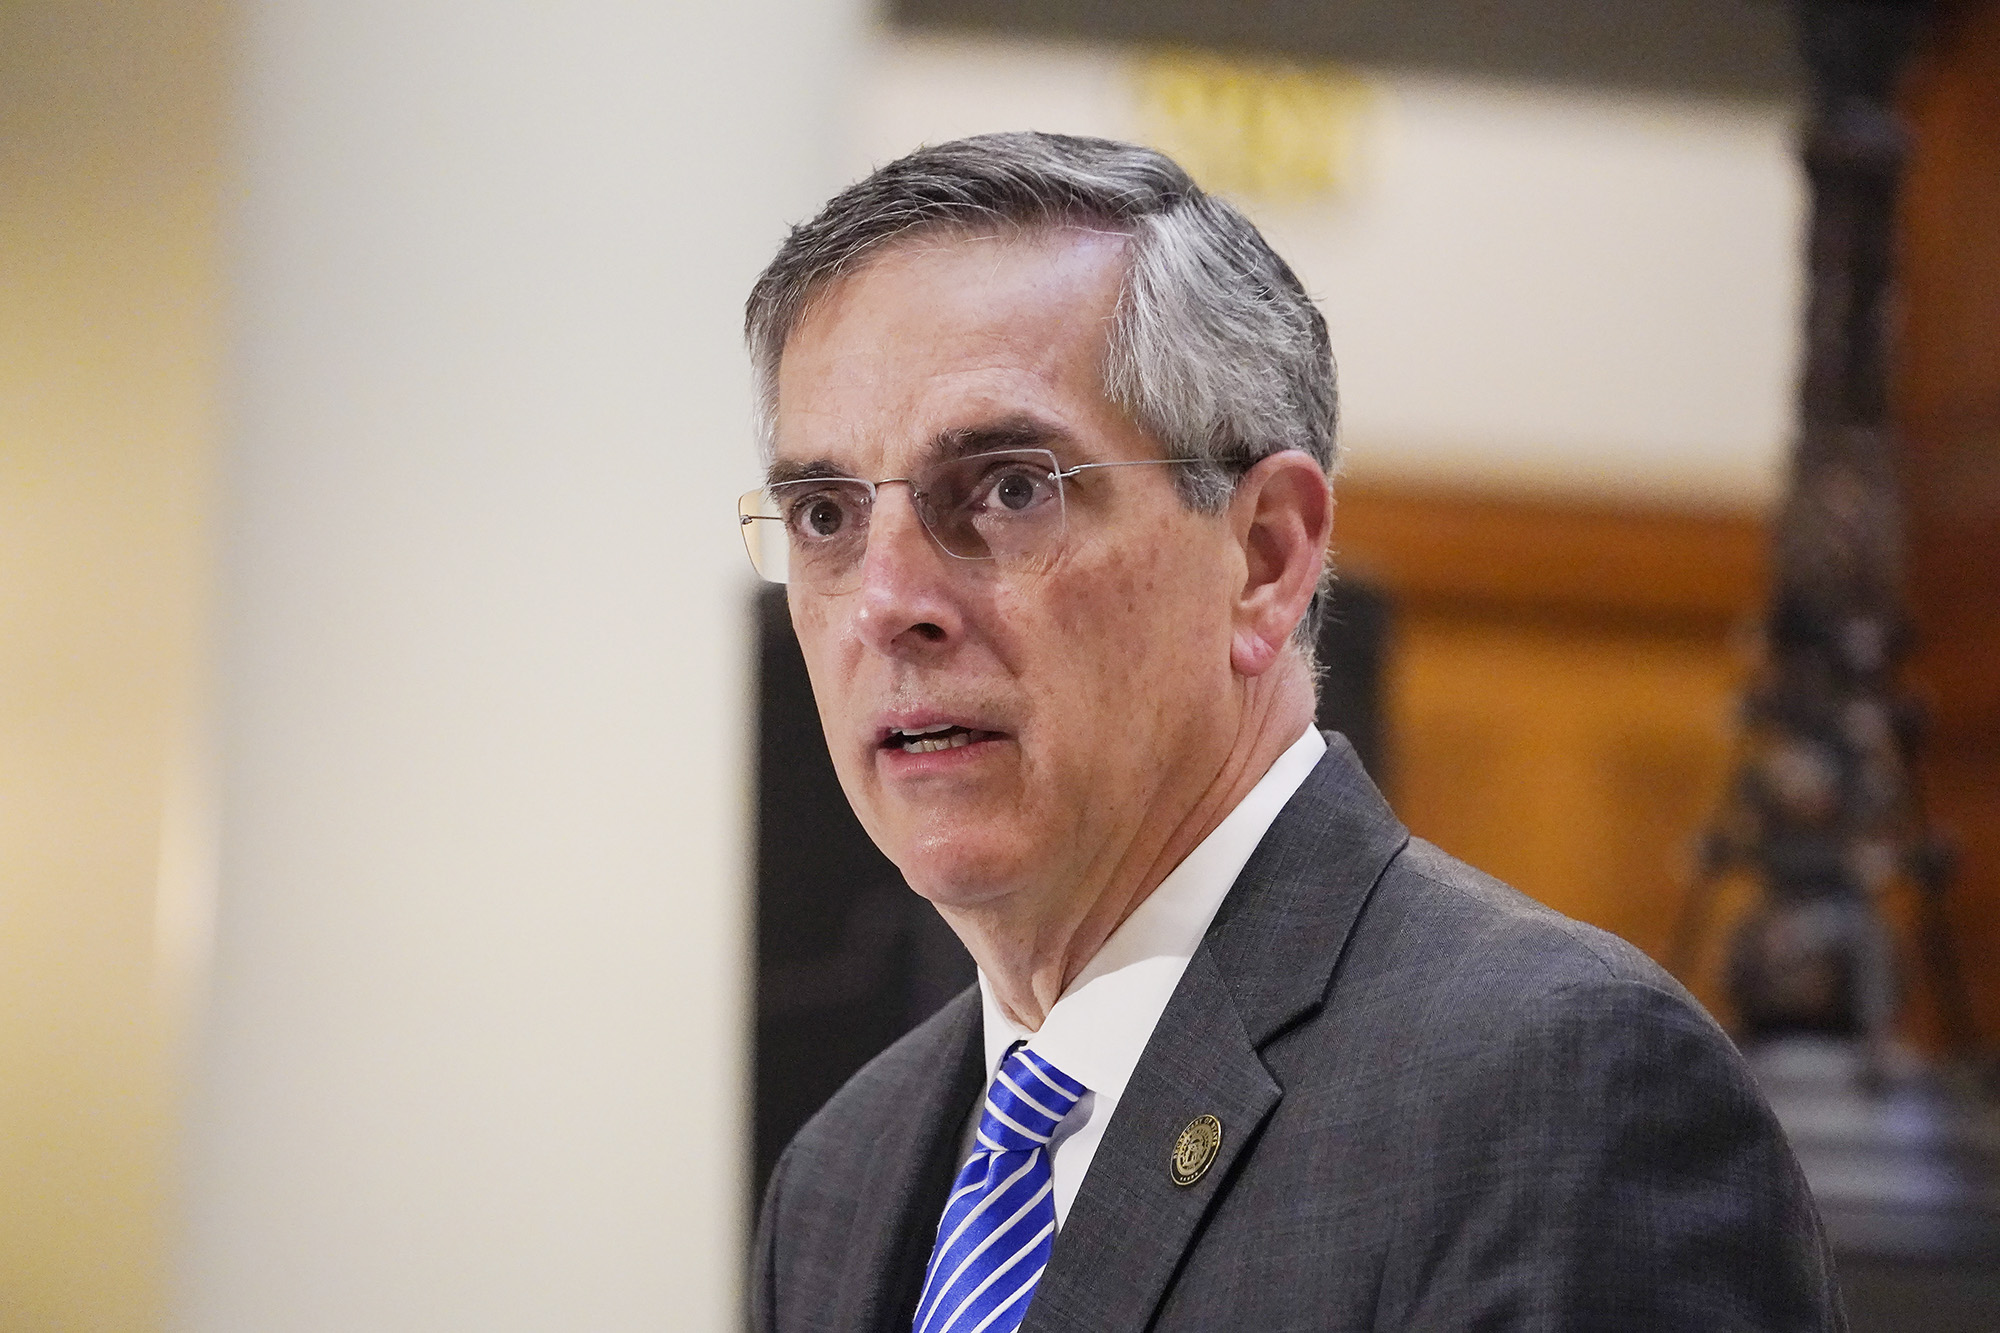 Georgia Secretary of State Brad Raffensperger speaks during a news conference in Atlanta, on November 20.